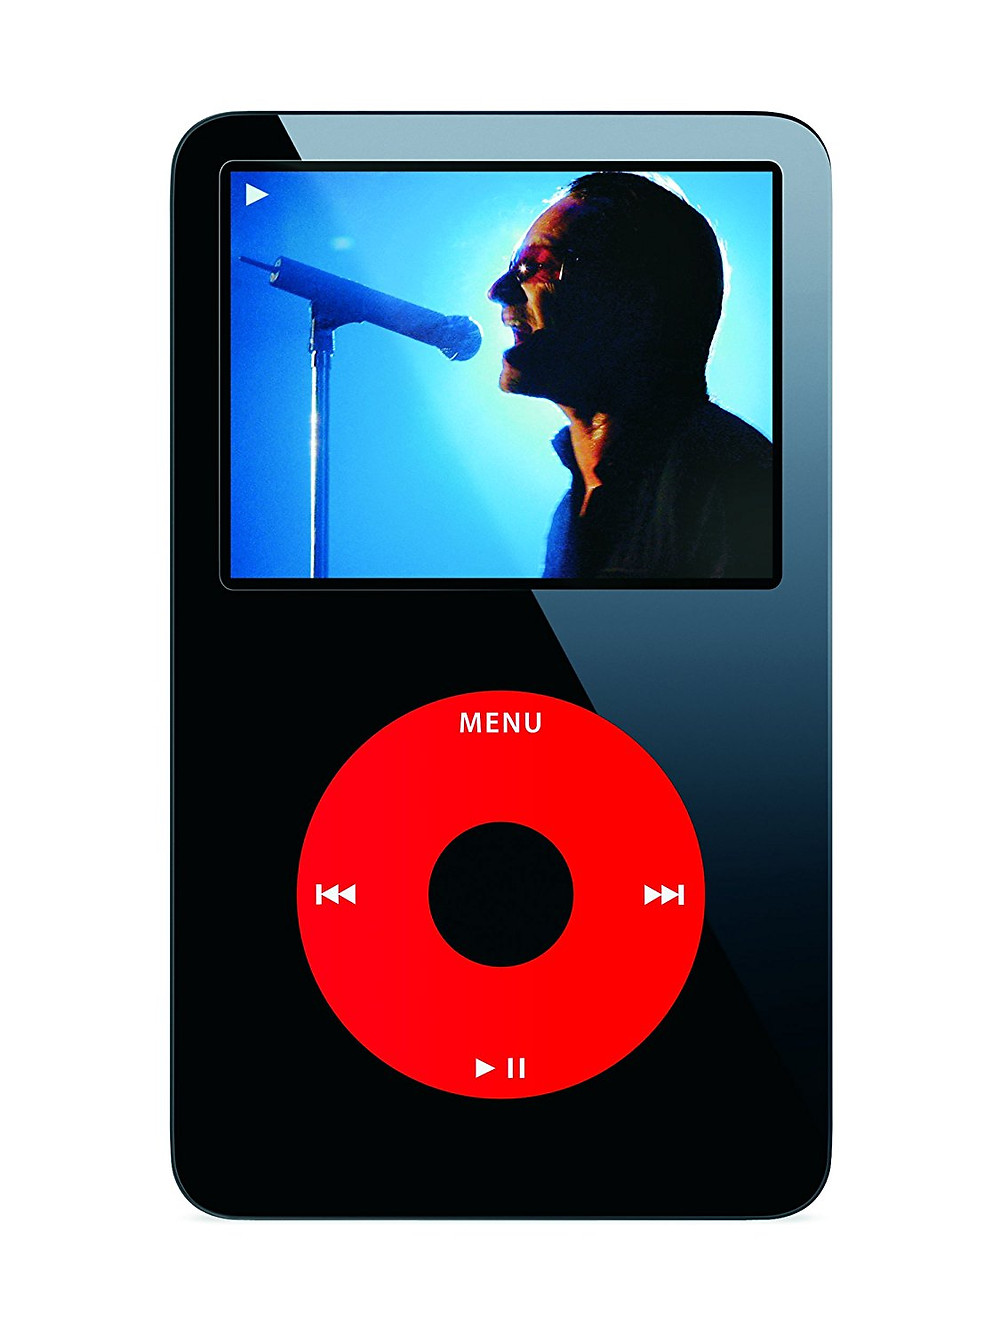 Apple and U2 together in the new digital music era - sound identity music blog #tbt #u2 #apple #ipod